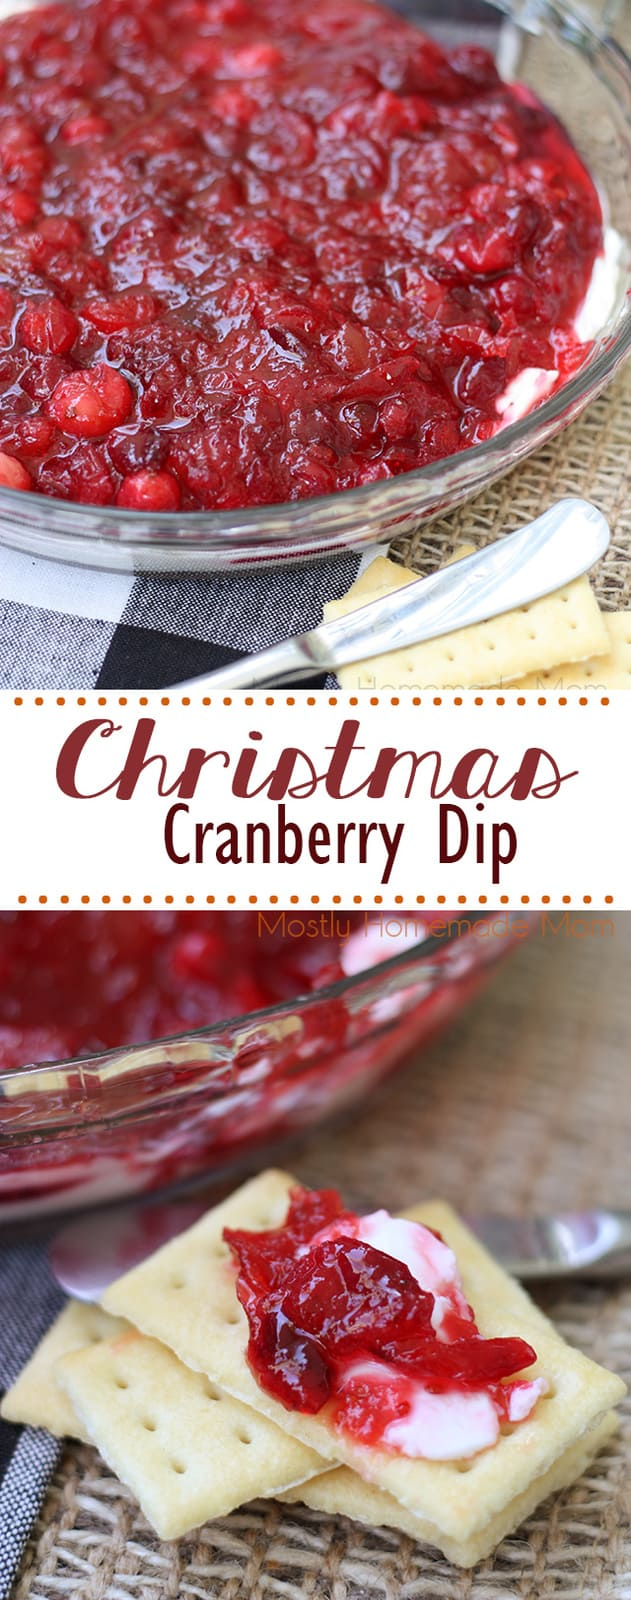 Christmas Cranberry Dip - the perfect, festive appetizer for the holiday season! Fresh cranberries, pineapple preserves, and cream cheese with buttery crackers! #christmas #thanksgiving #appetizer #cranberrydip